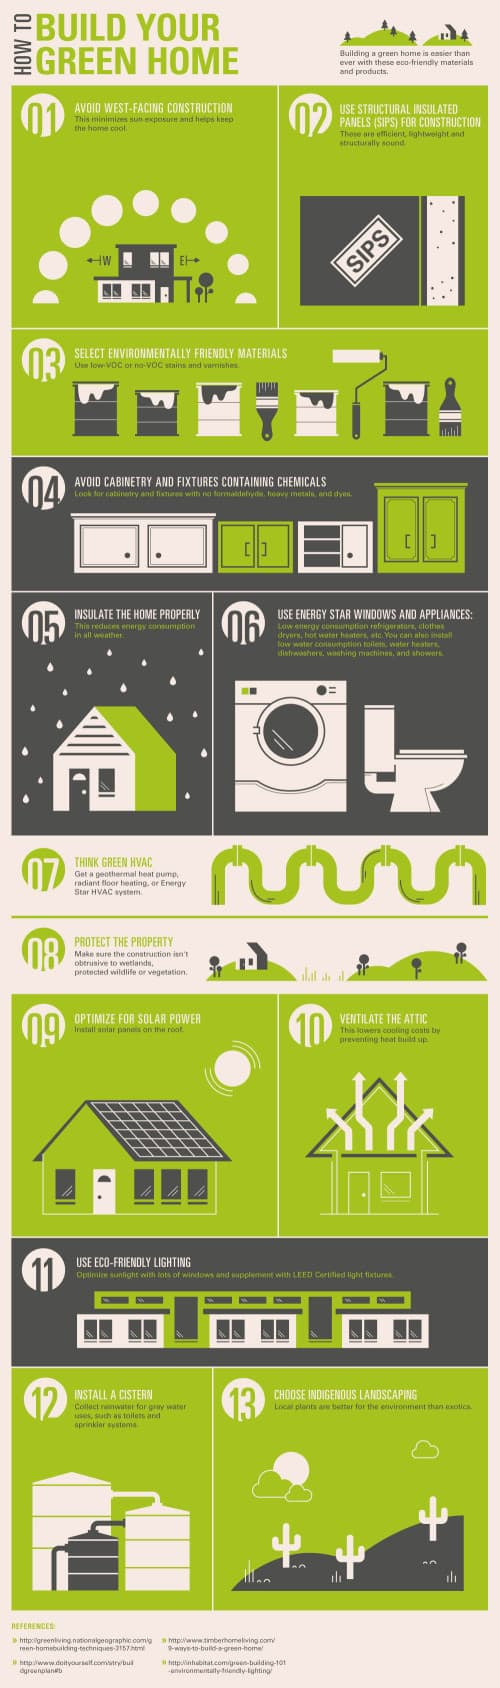 How to build your green home - infographic